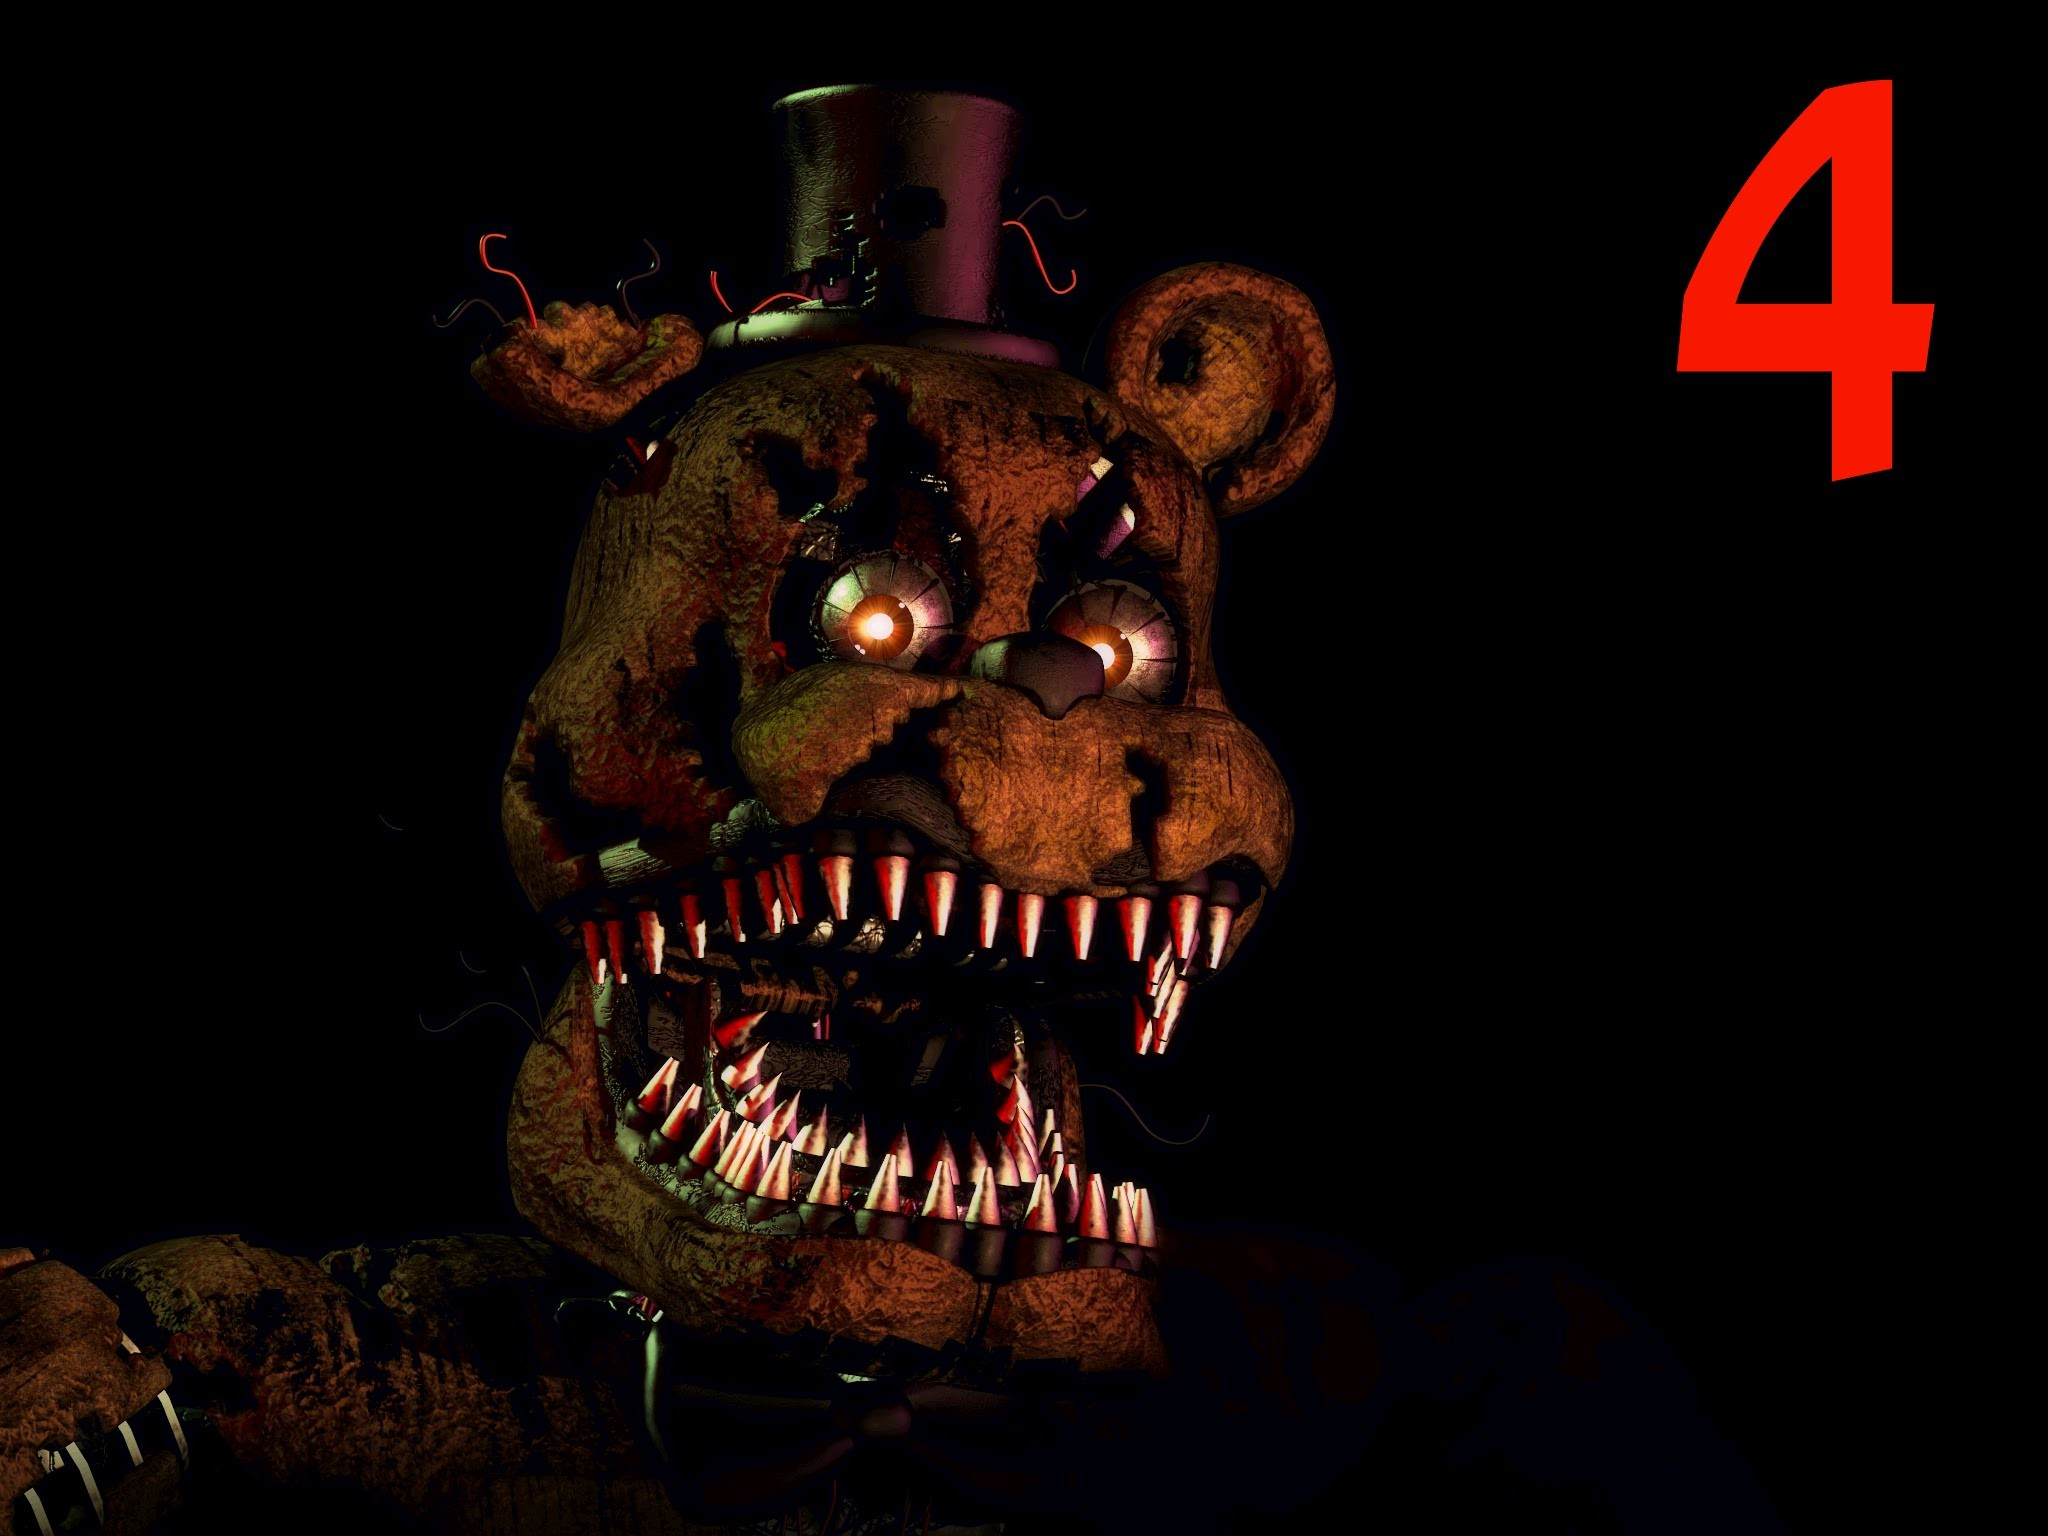 FNAF 4 IOS IS OUT!!